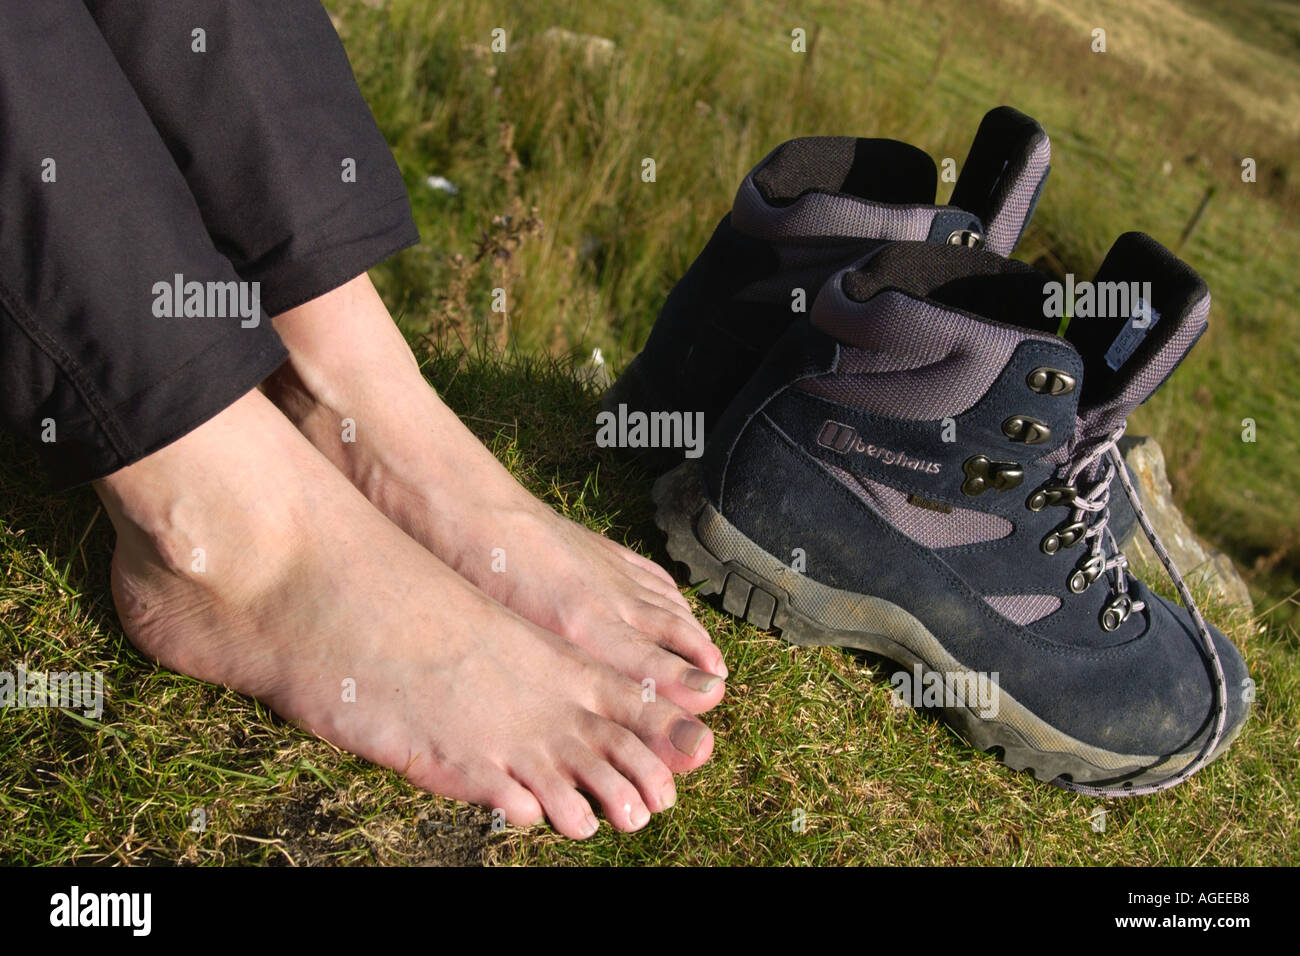 4eae8a3fa80 Close up of feet and Berghaus walking boots after hike in Snowdonia ...